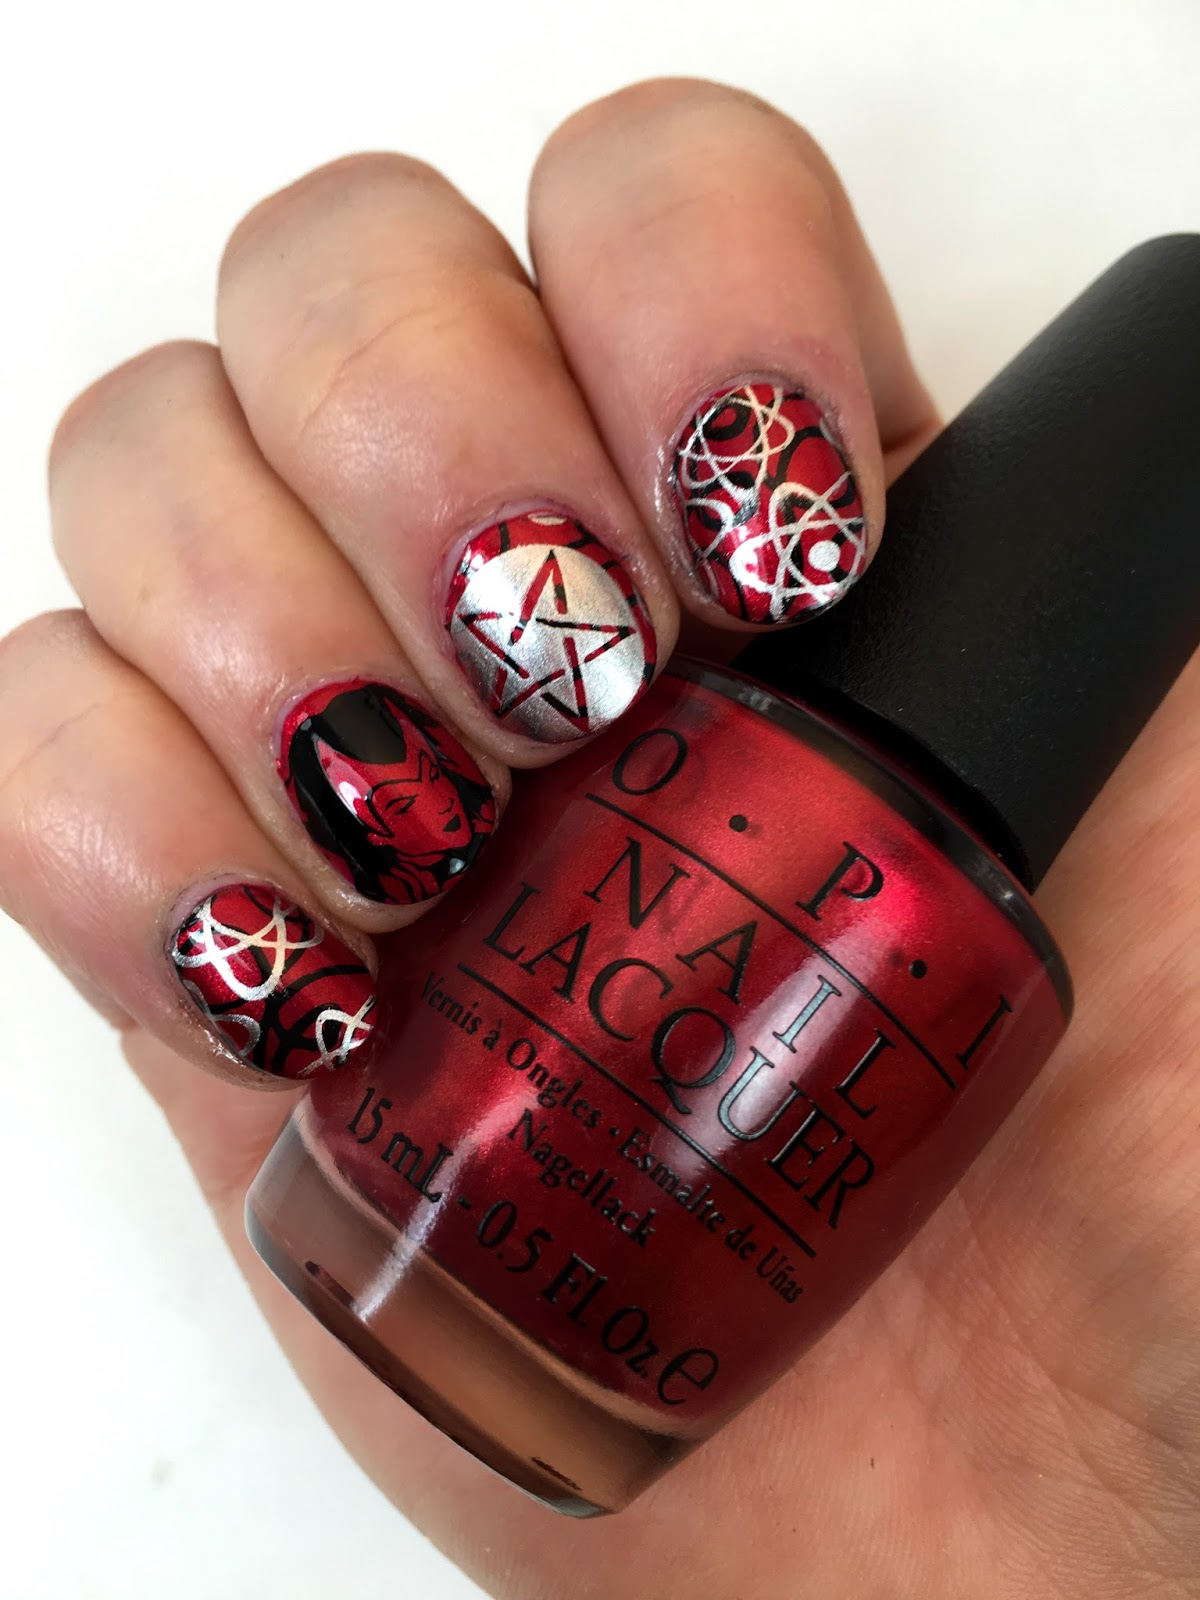 I\'m beautiful, dammit!: The 31 Day Nail Art Challenge 2016: Day 1 - Red